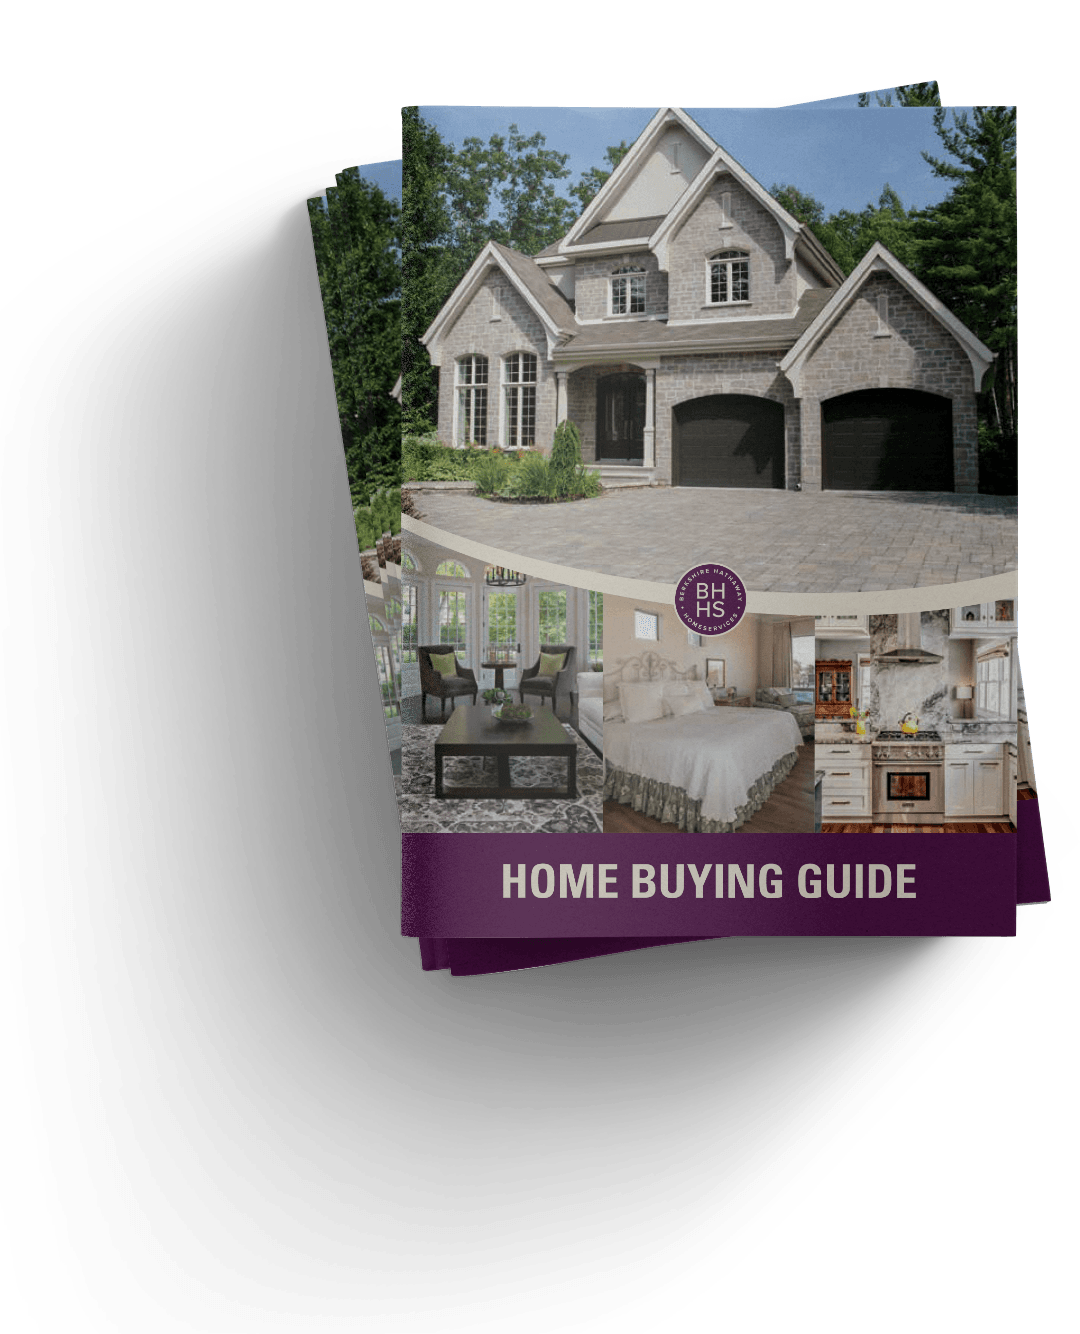 Home Buyer Guide from Berkshire Hathaway HomeServices Select Realty